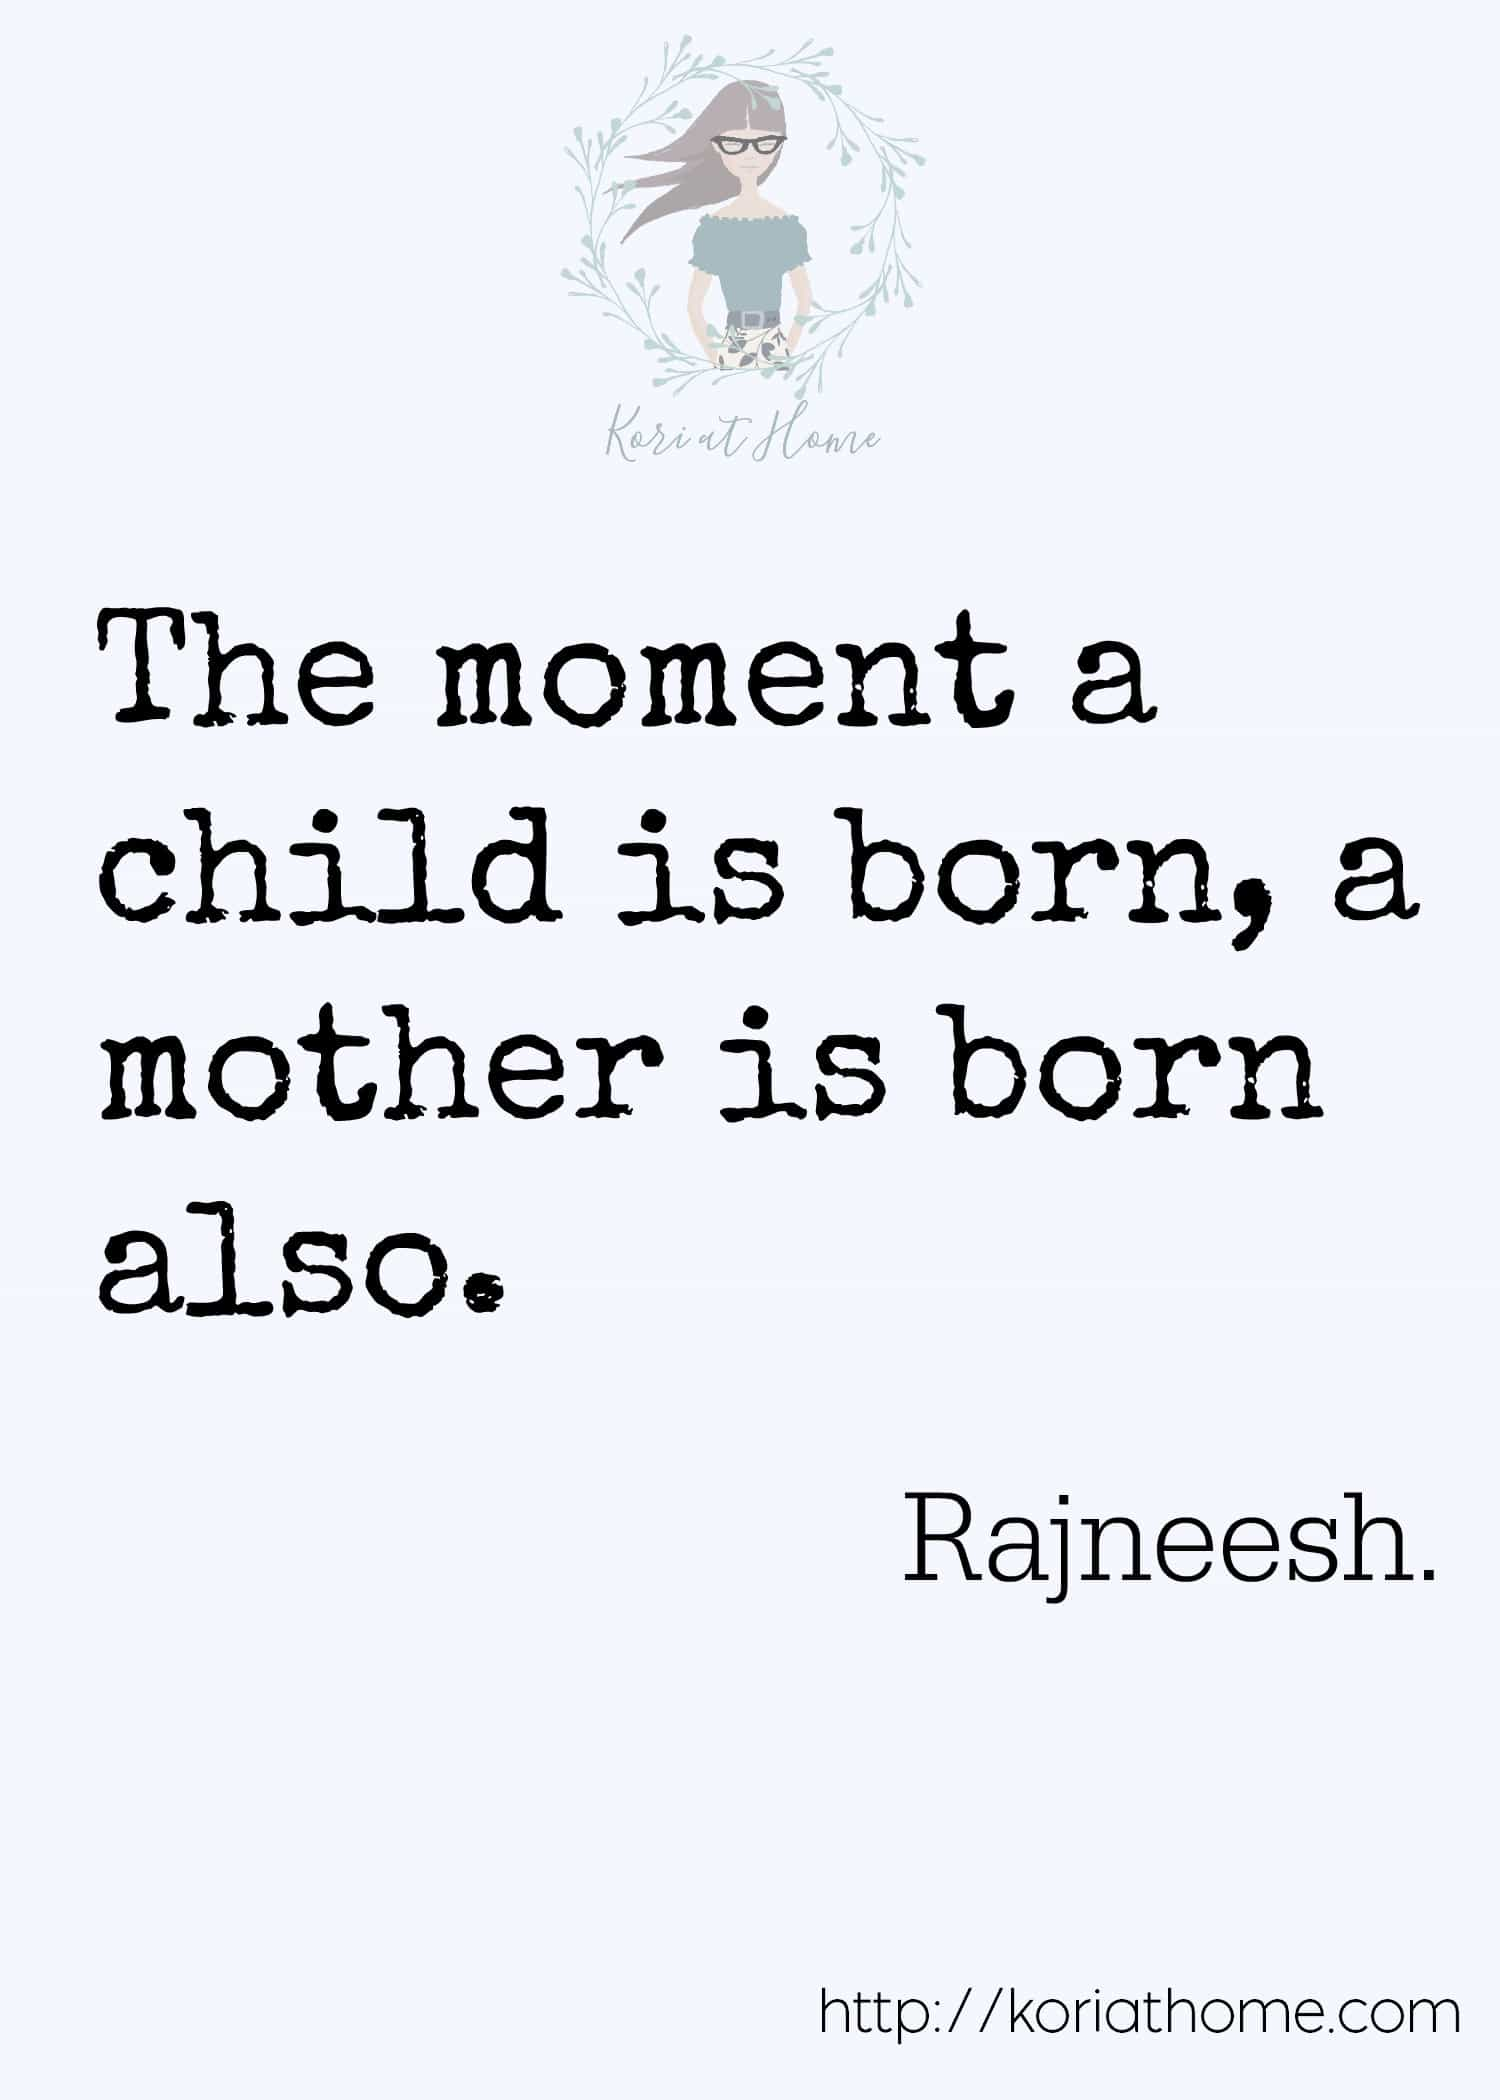 There are quotes for just about everything it seems. Here's one incredibly meaningful quote about motherhood that really resonated with me.